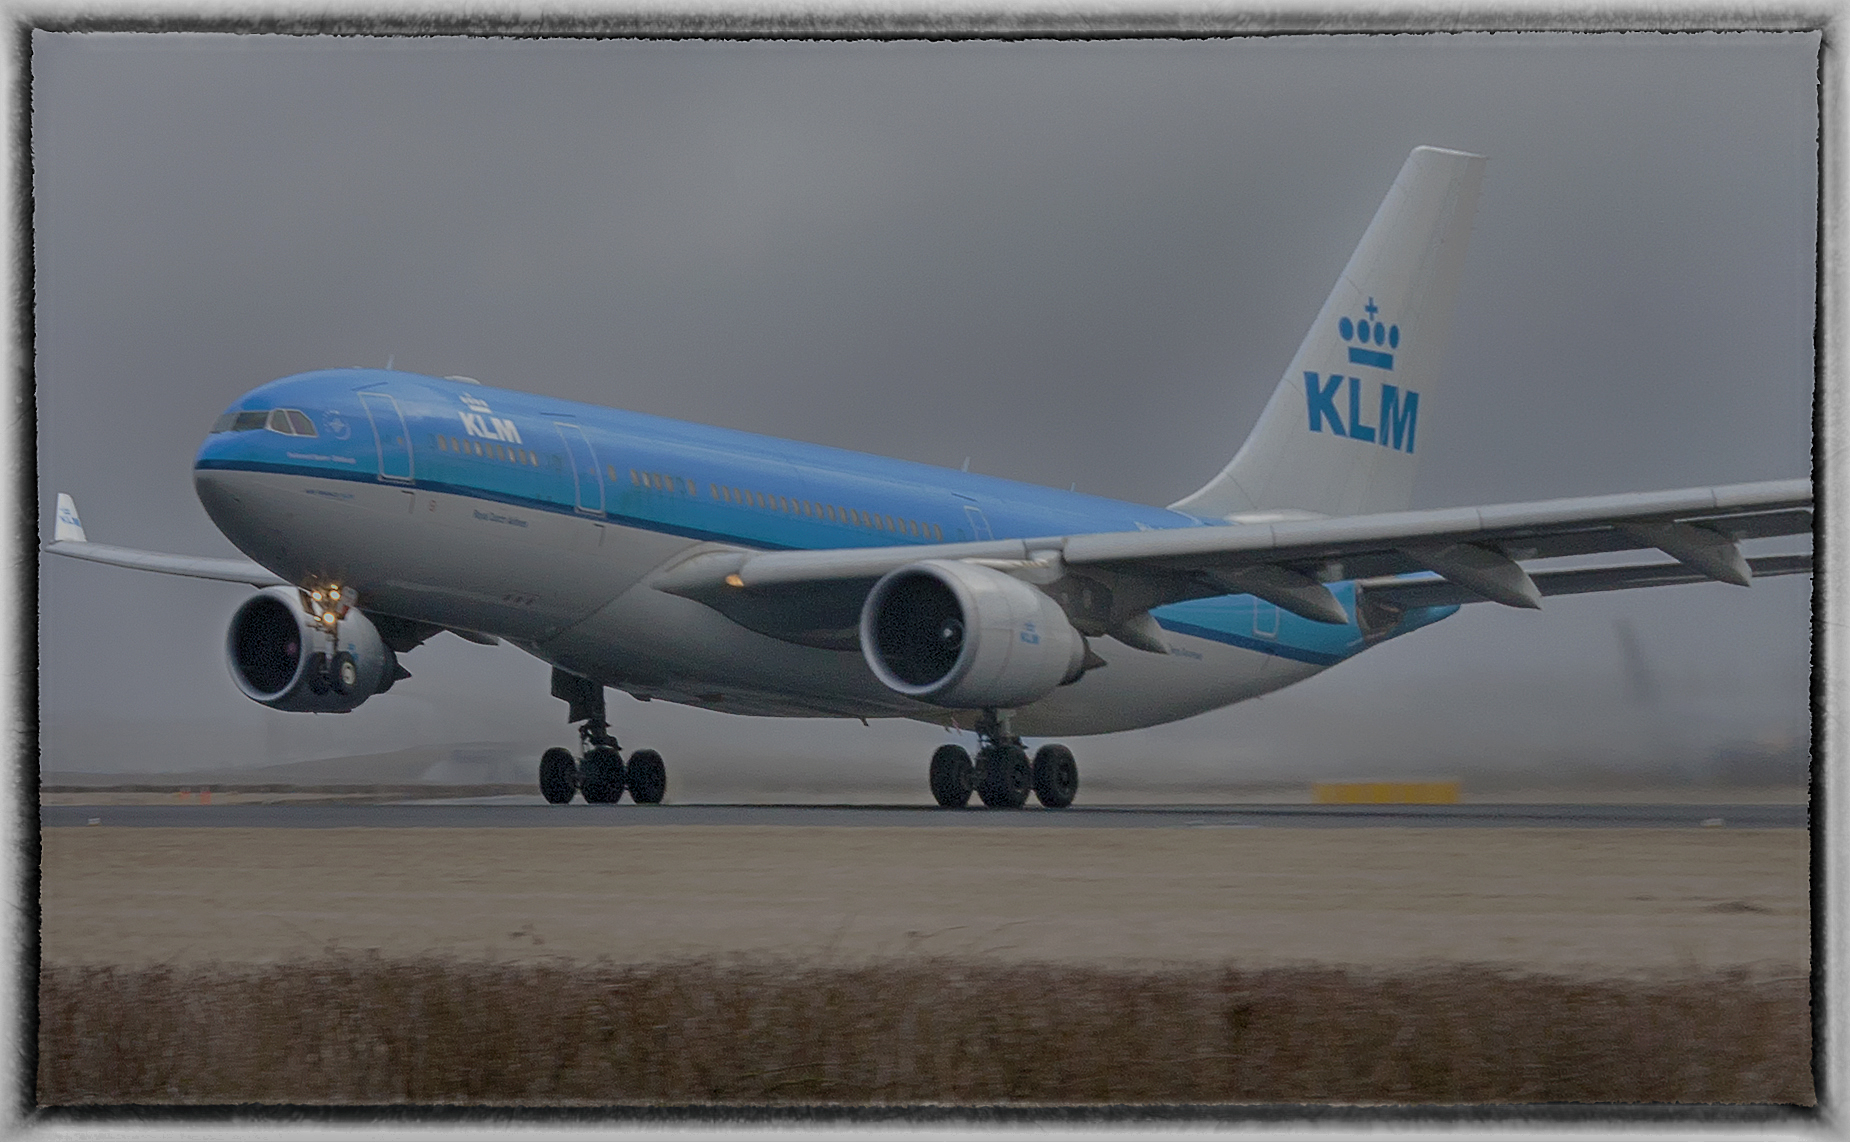 KLM PH-AOE (MSN 770)